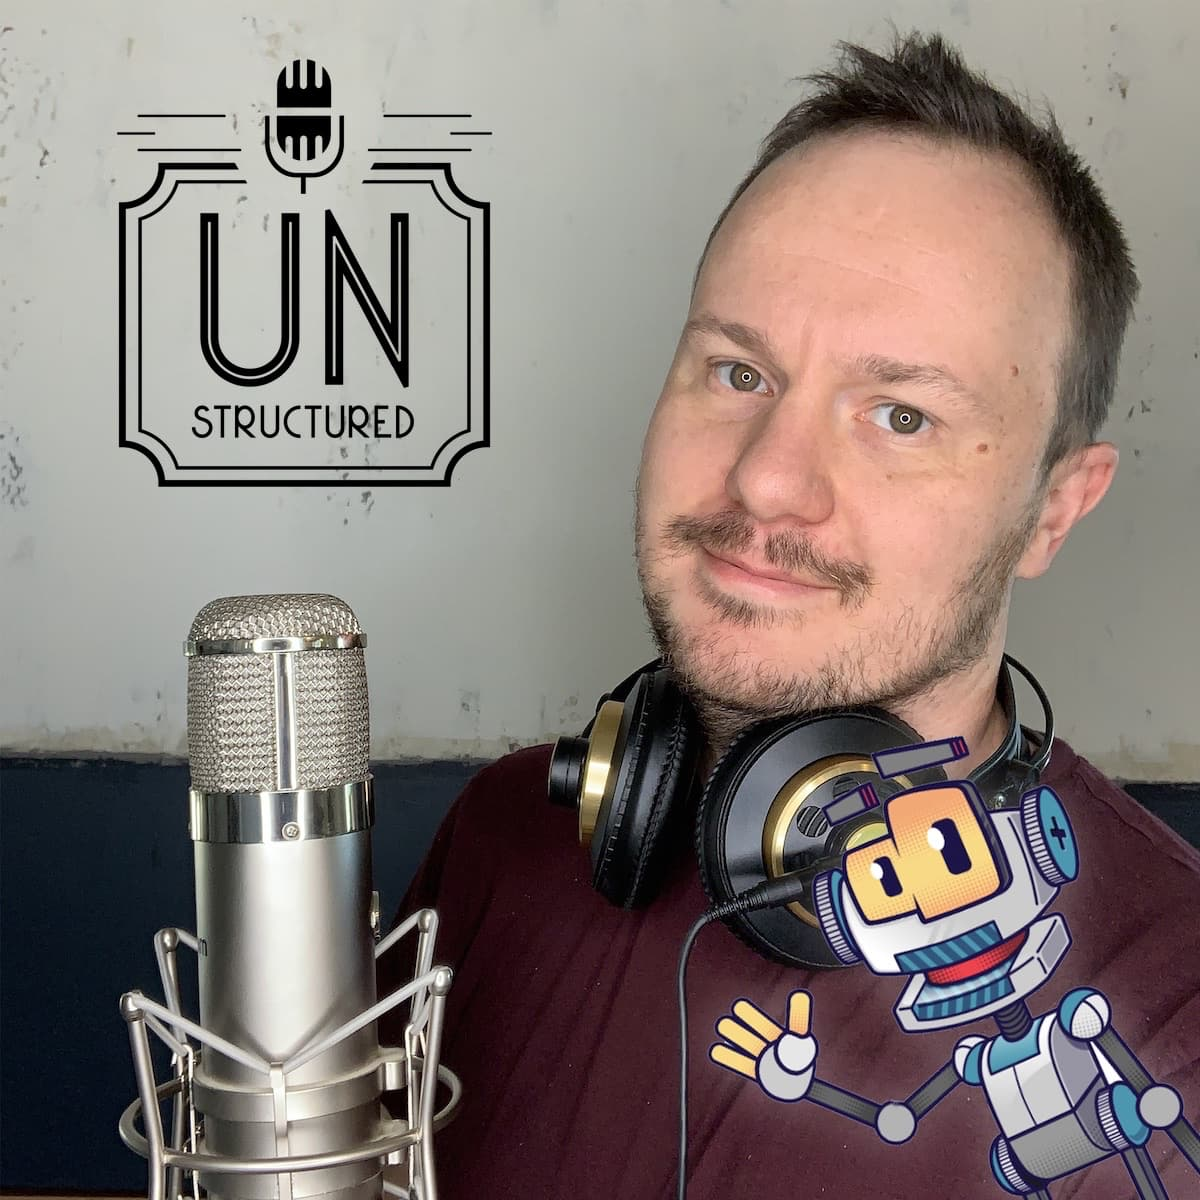 149 - Stephen Davis - Unique wide-ranging and well-researched unstructured interviews hosted by Eric Hunley UnstructuredPod Dynamic Informal Conversations